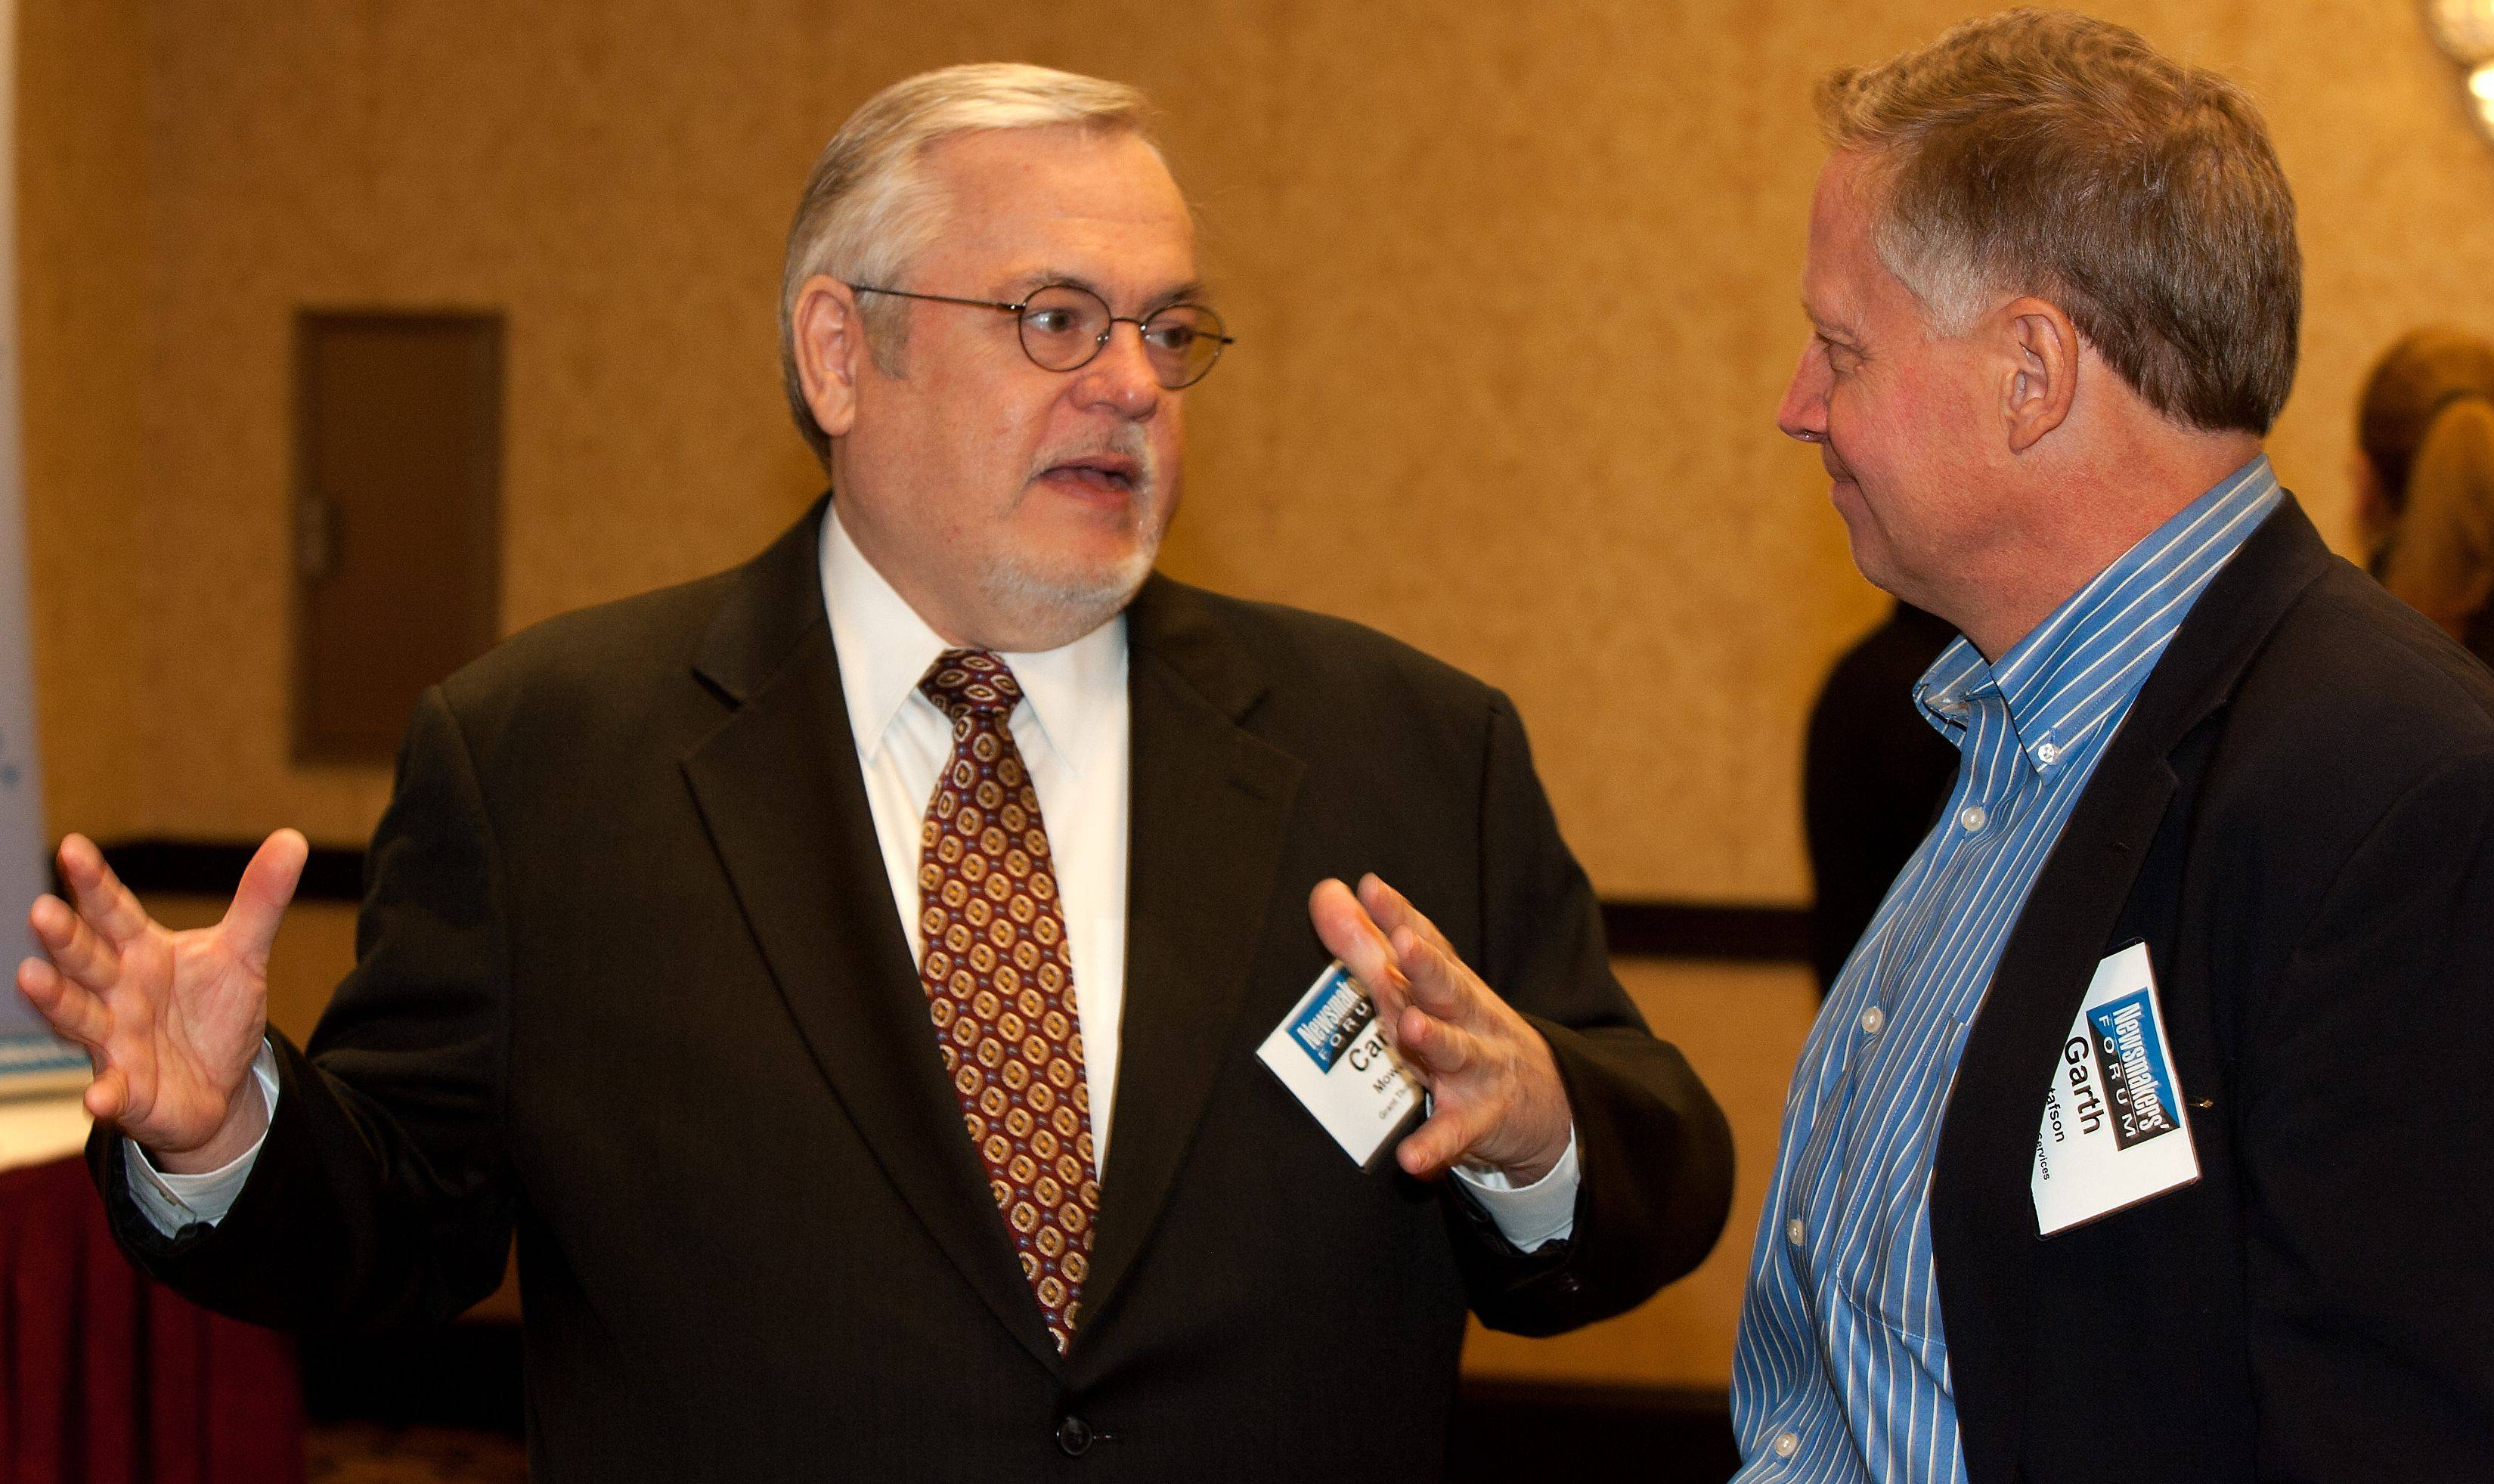 Panelist Carl Mowery of Grant Thornton LLP, left, talks with Garth Gustafson, right, of Plexus Groupe in Deer Park, before the Business Ledger Newsmakers Forum.